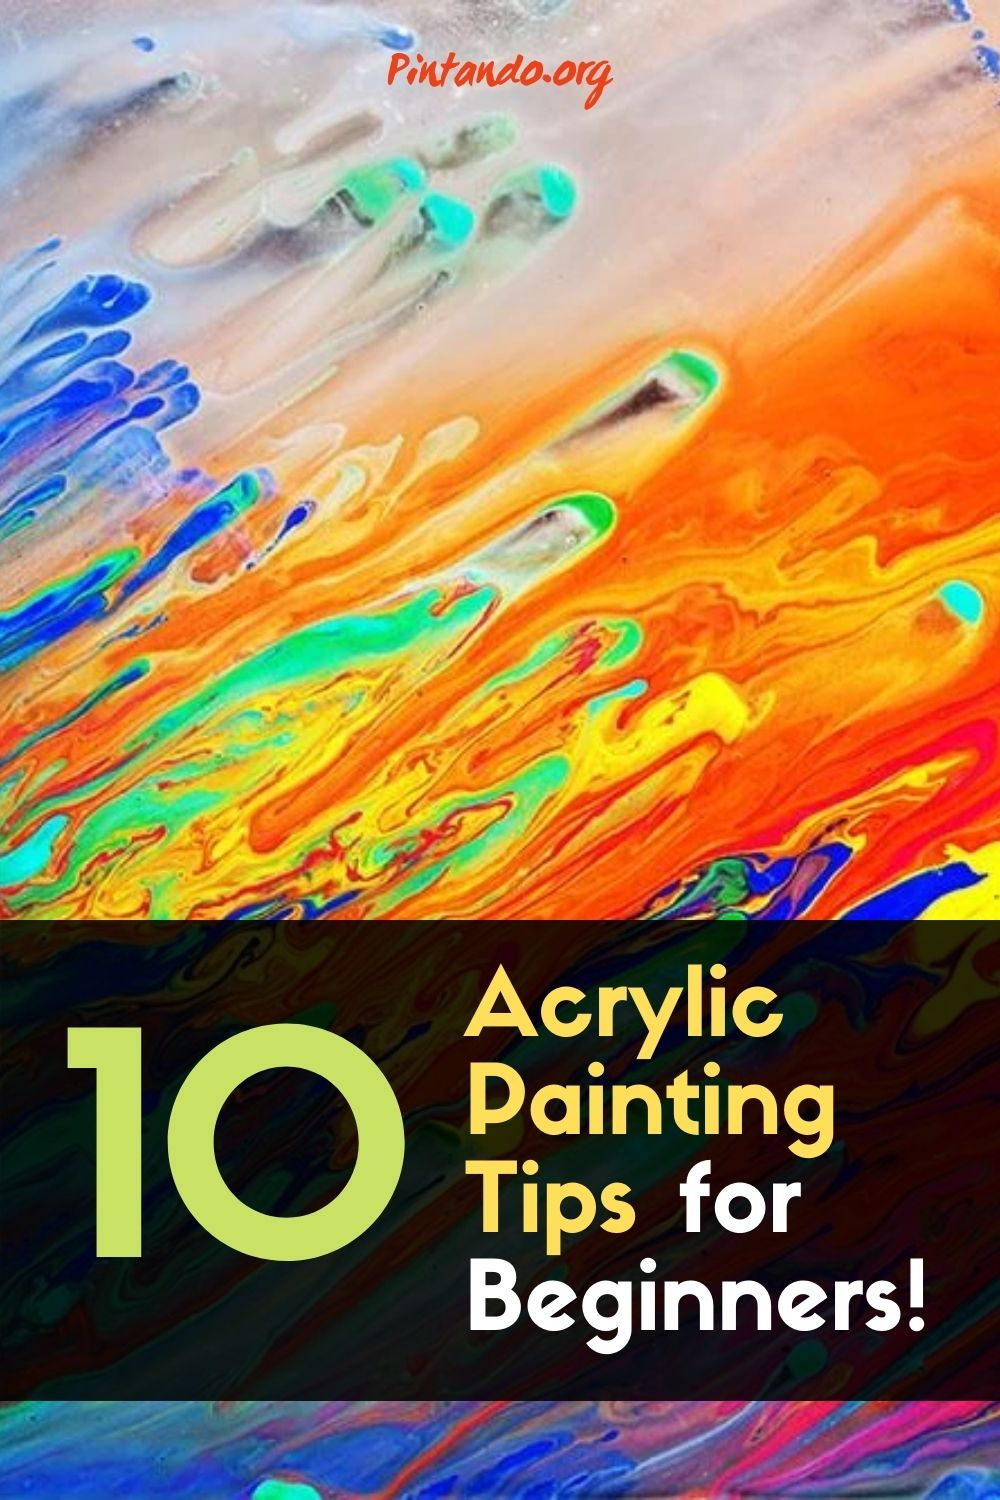 Acrylic Painting Tips for Beginners!